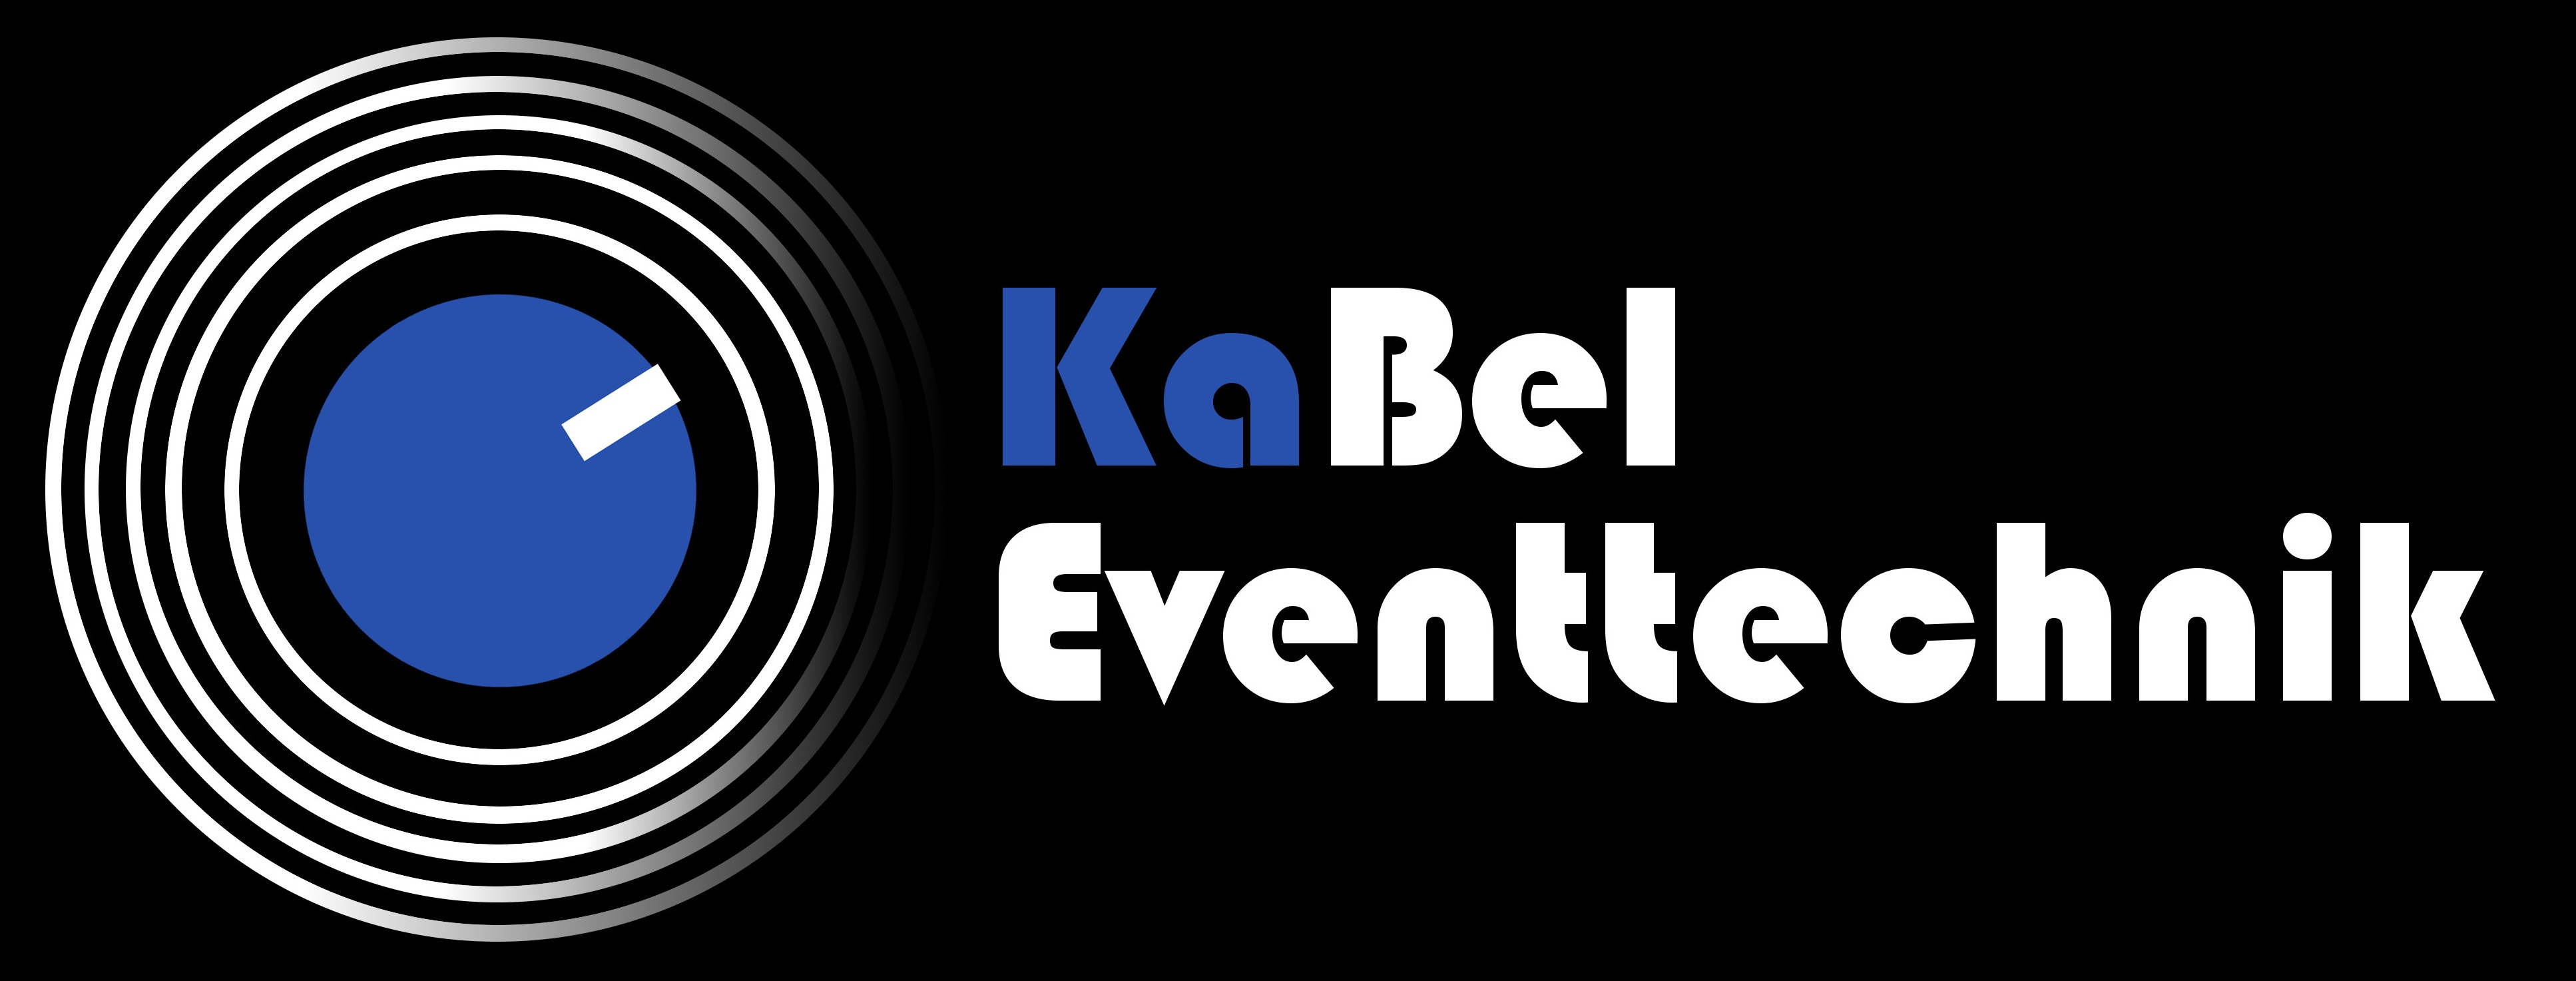 Kabel-Eventtechnik